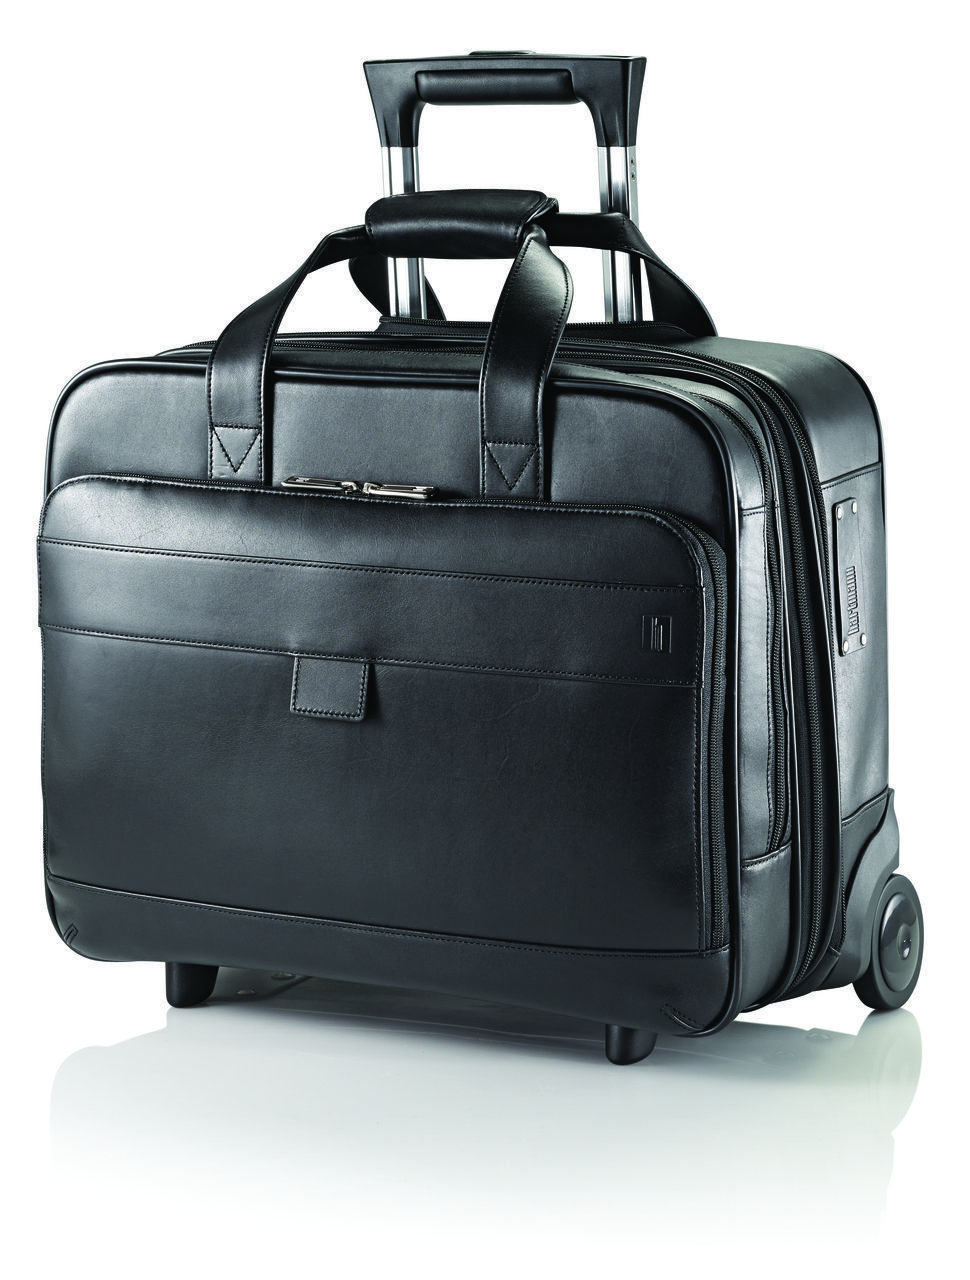 Hartmann Heritage Mobile Office Leather Rolling 15 6 Laptop Case Luggageplanet